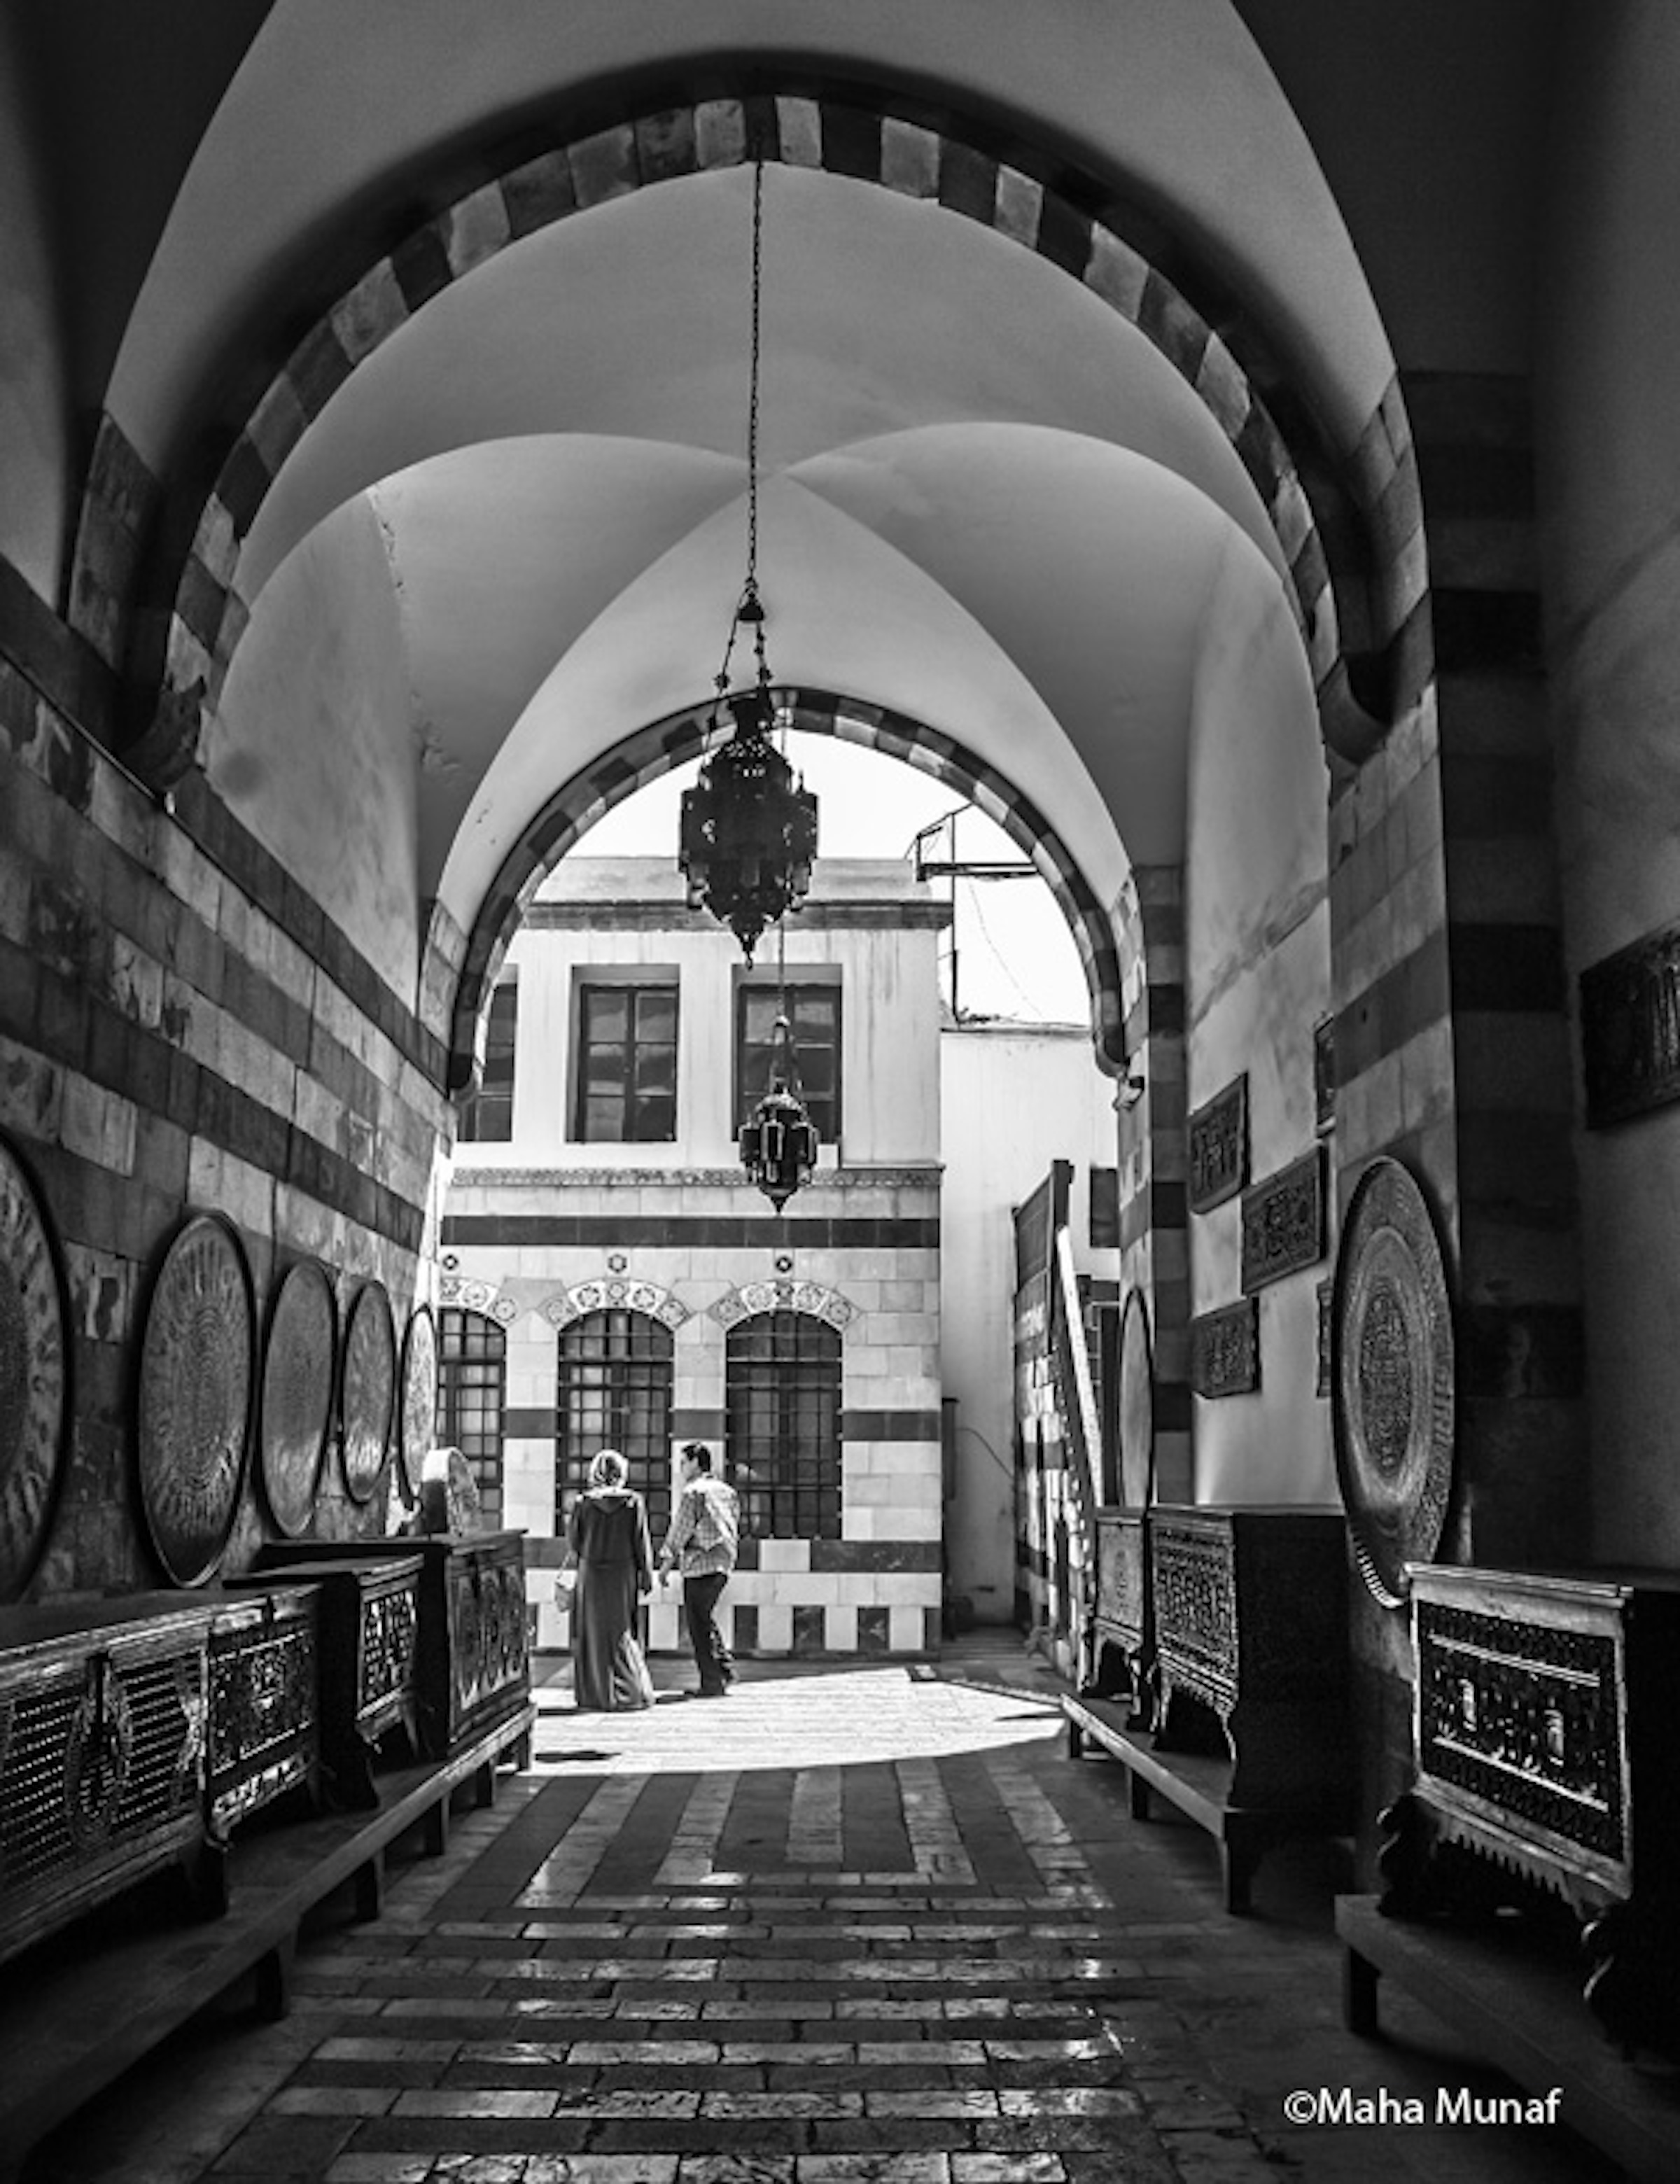 """AZM PALACE  Damascus, Syria 2006 by Maha Munaf 27"""" x 32"""" digital photograph on paper"""